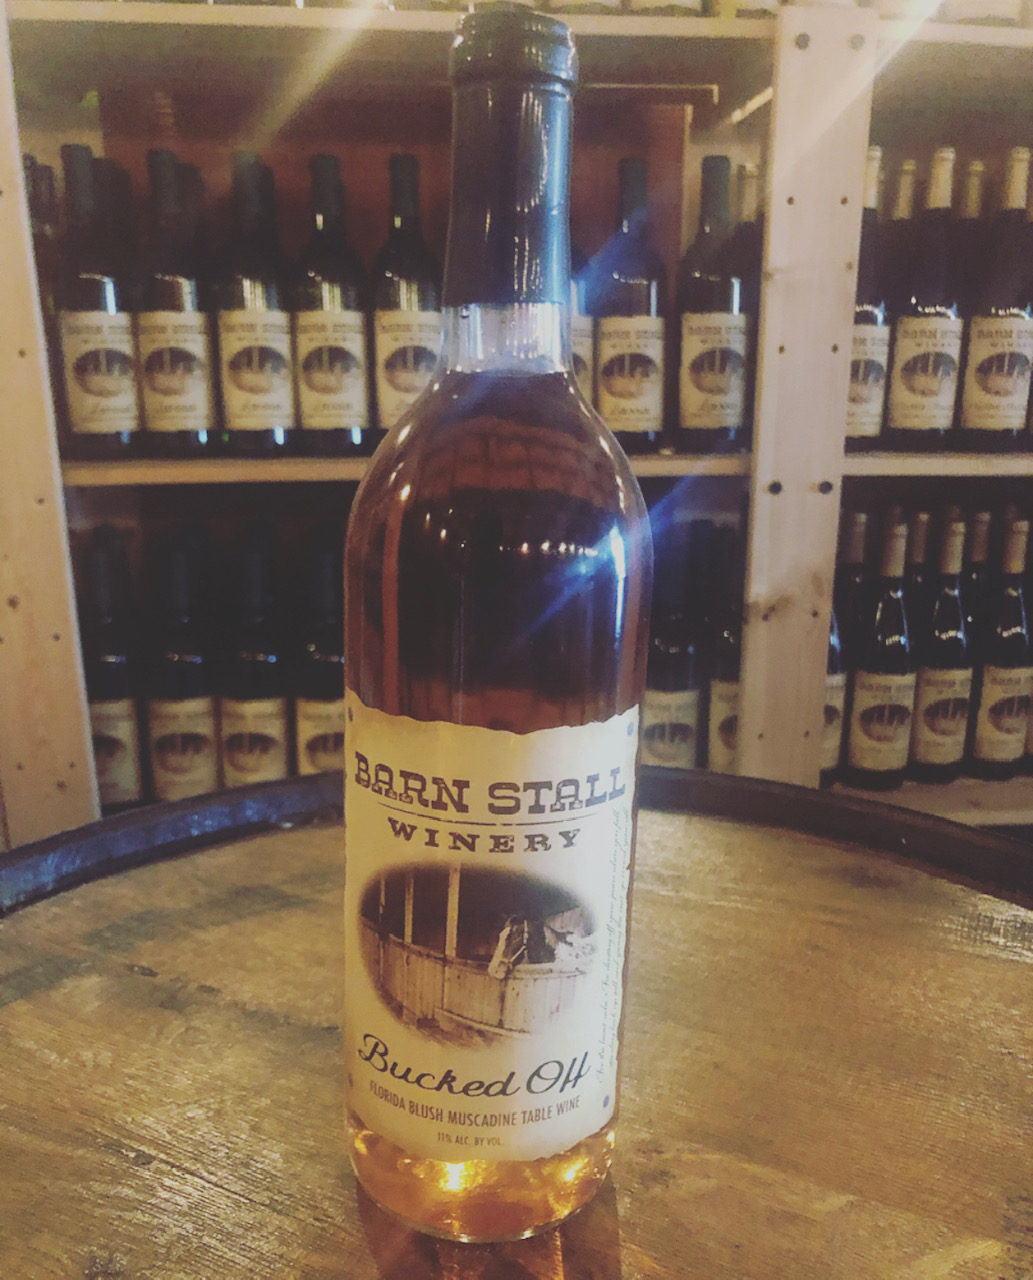 Bucked Off - Florida Blush Muscadine Table Wine. For the heart ache. For dusting off your jeans when you fall. Standing back up tall and giving the next round a go. 11% alc